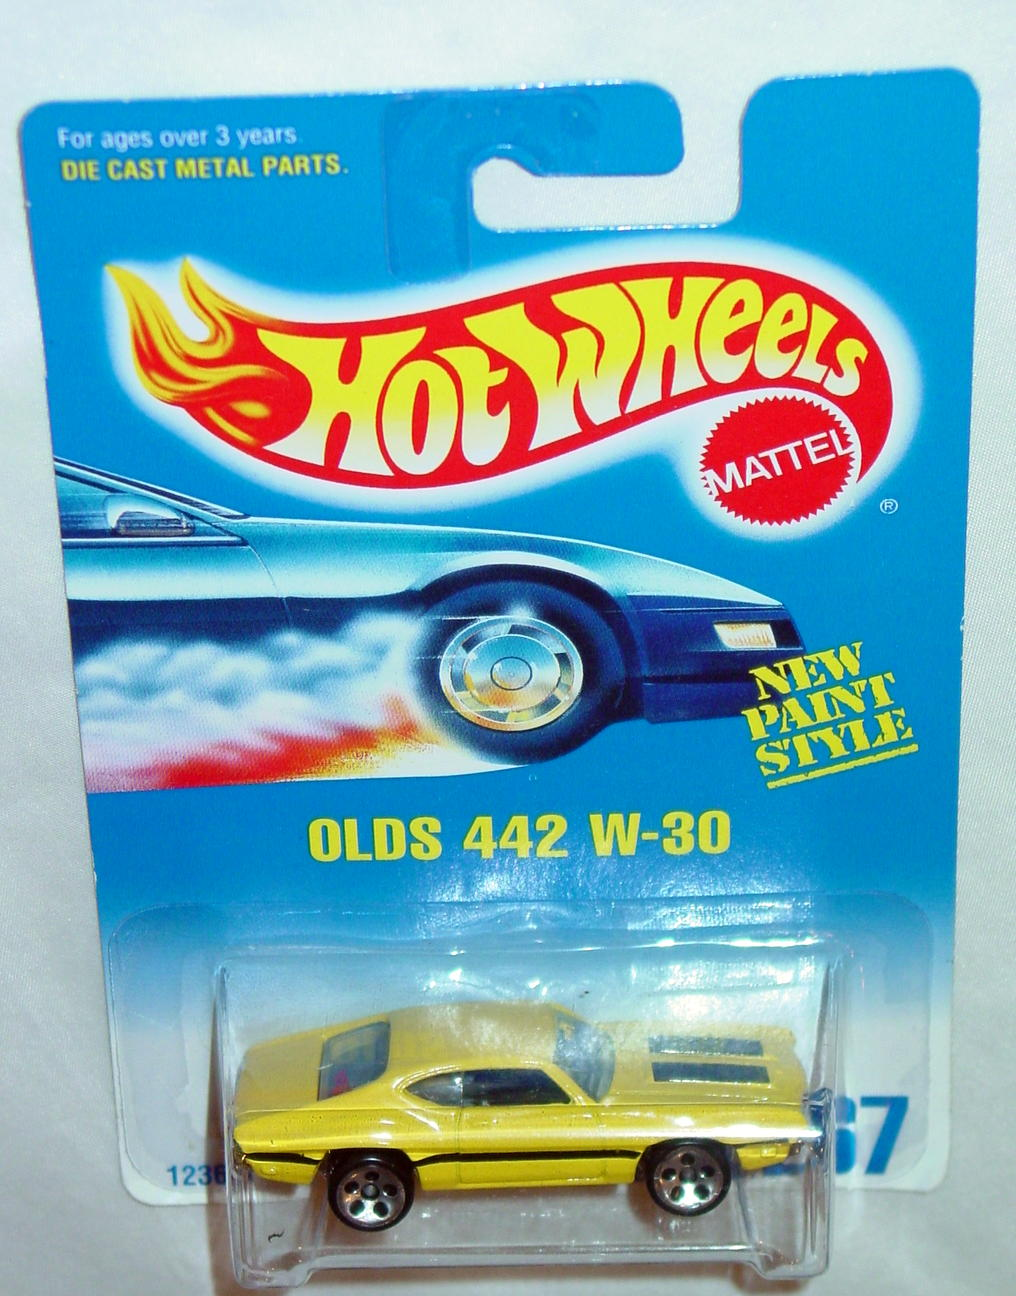 Blackwalls 12360 - 267 Olds 442 W-30 Yellow Col HO5